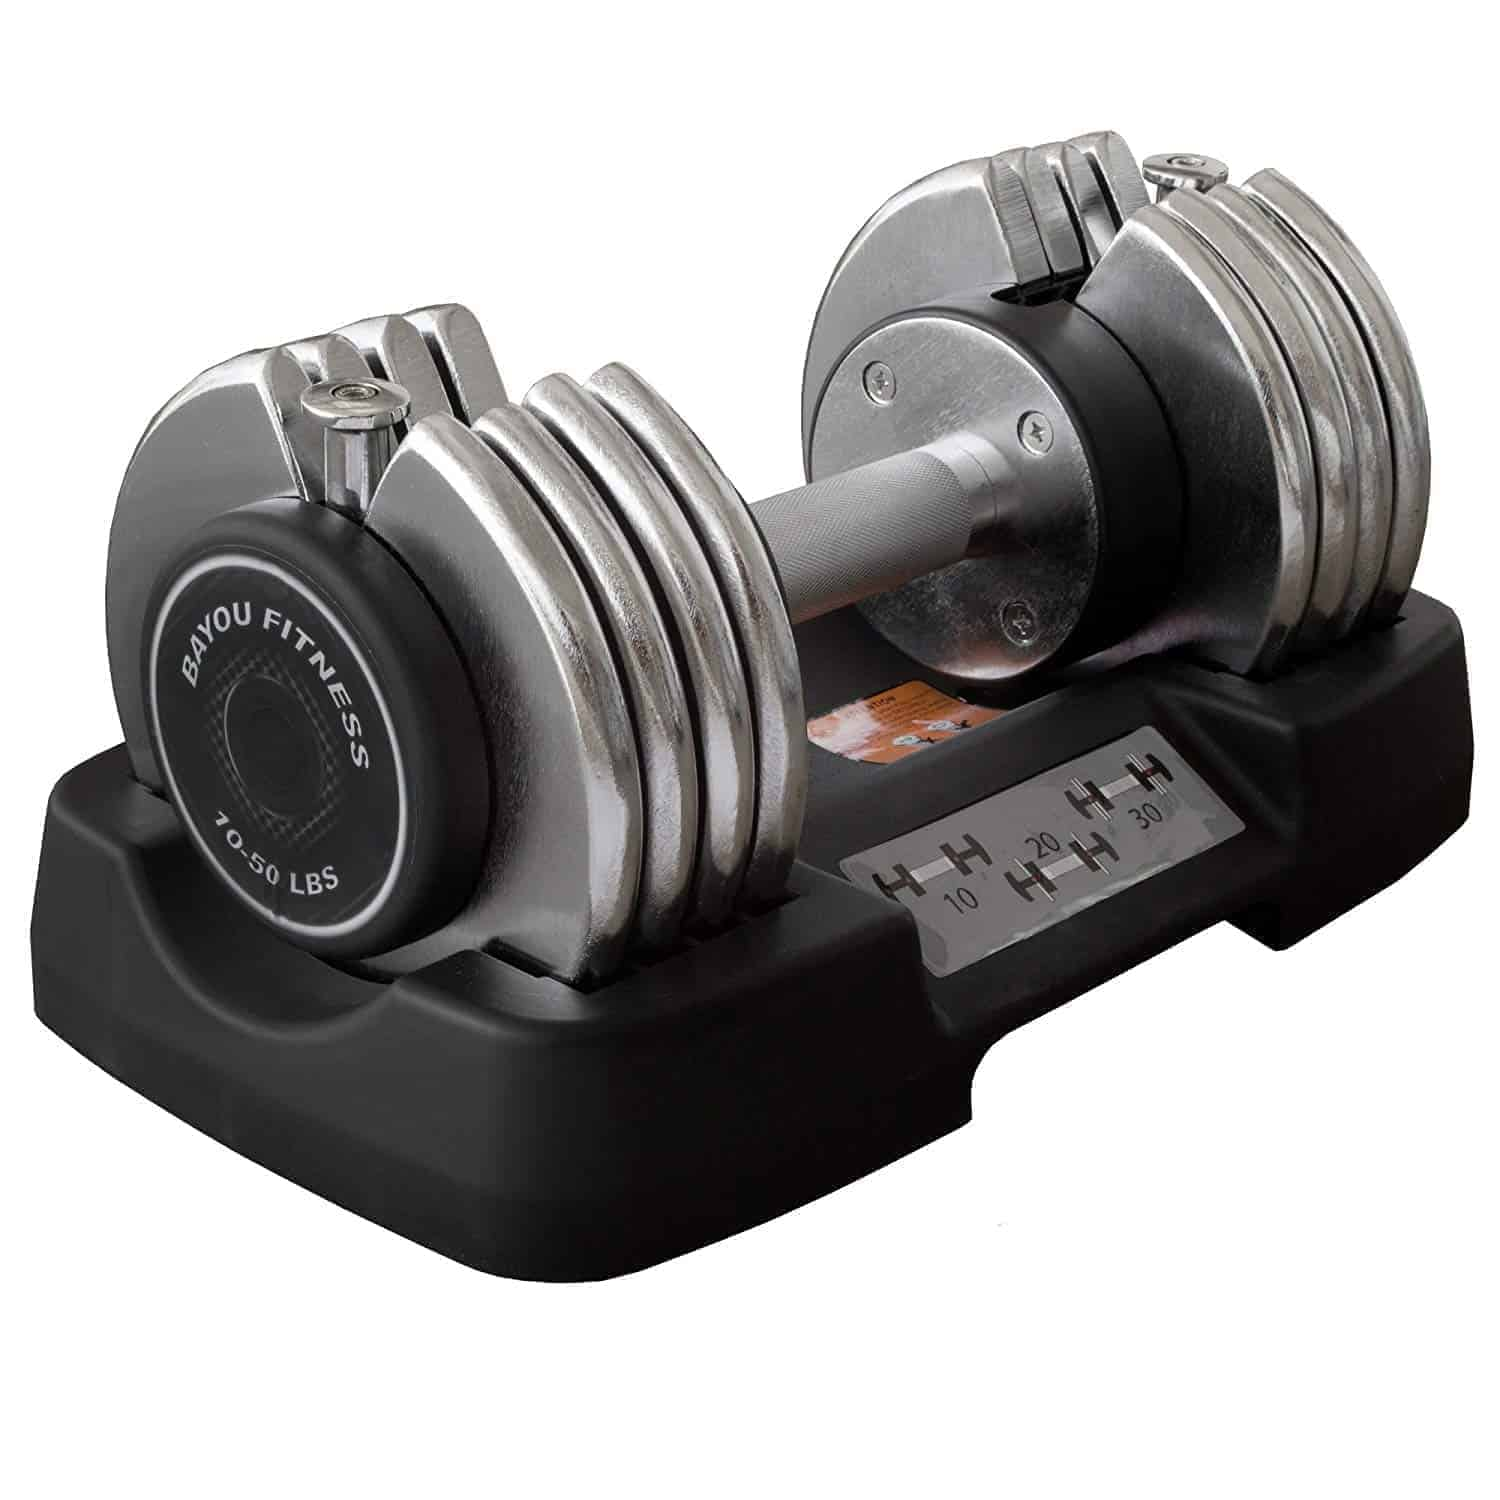 Bayou Fitness selectable hand weights